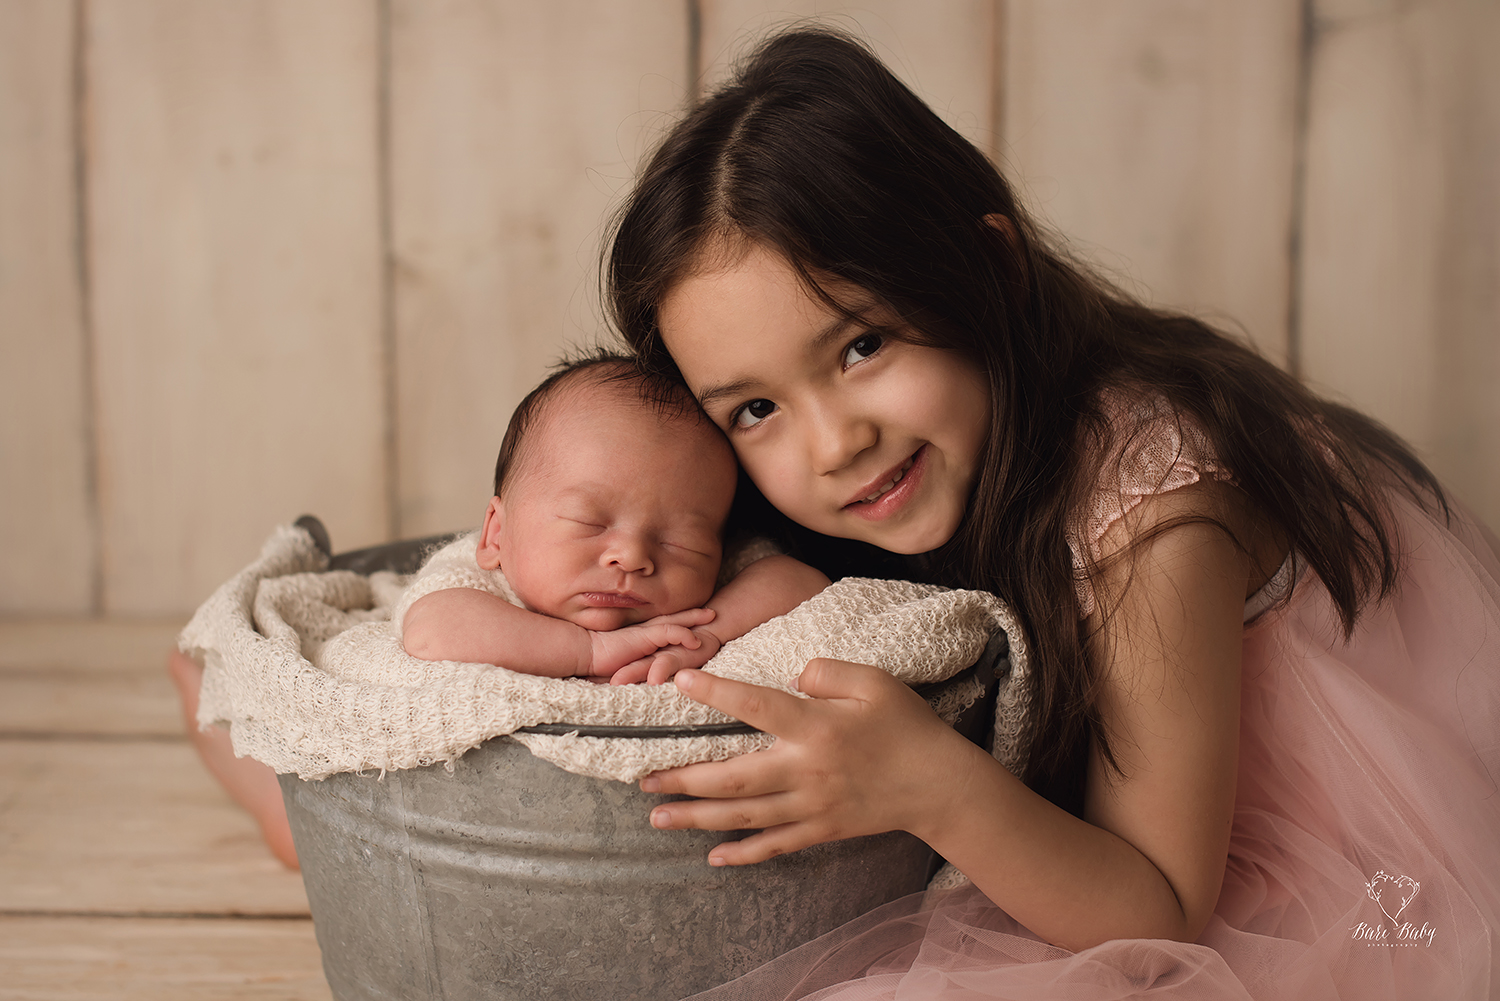 sibling-newborn-photos-barebabyphotography-columbusohio.jpg